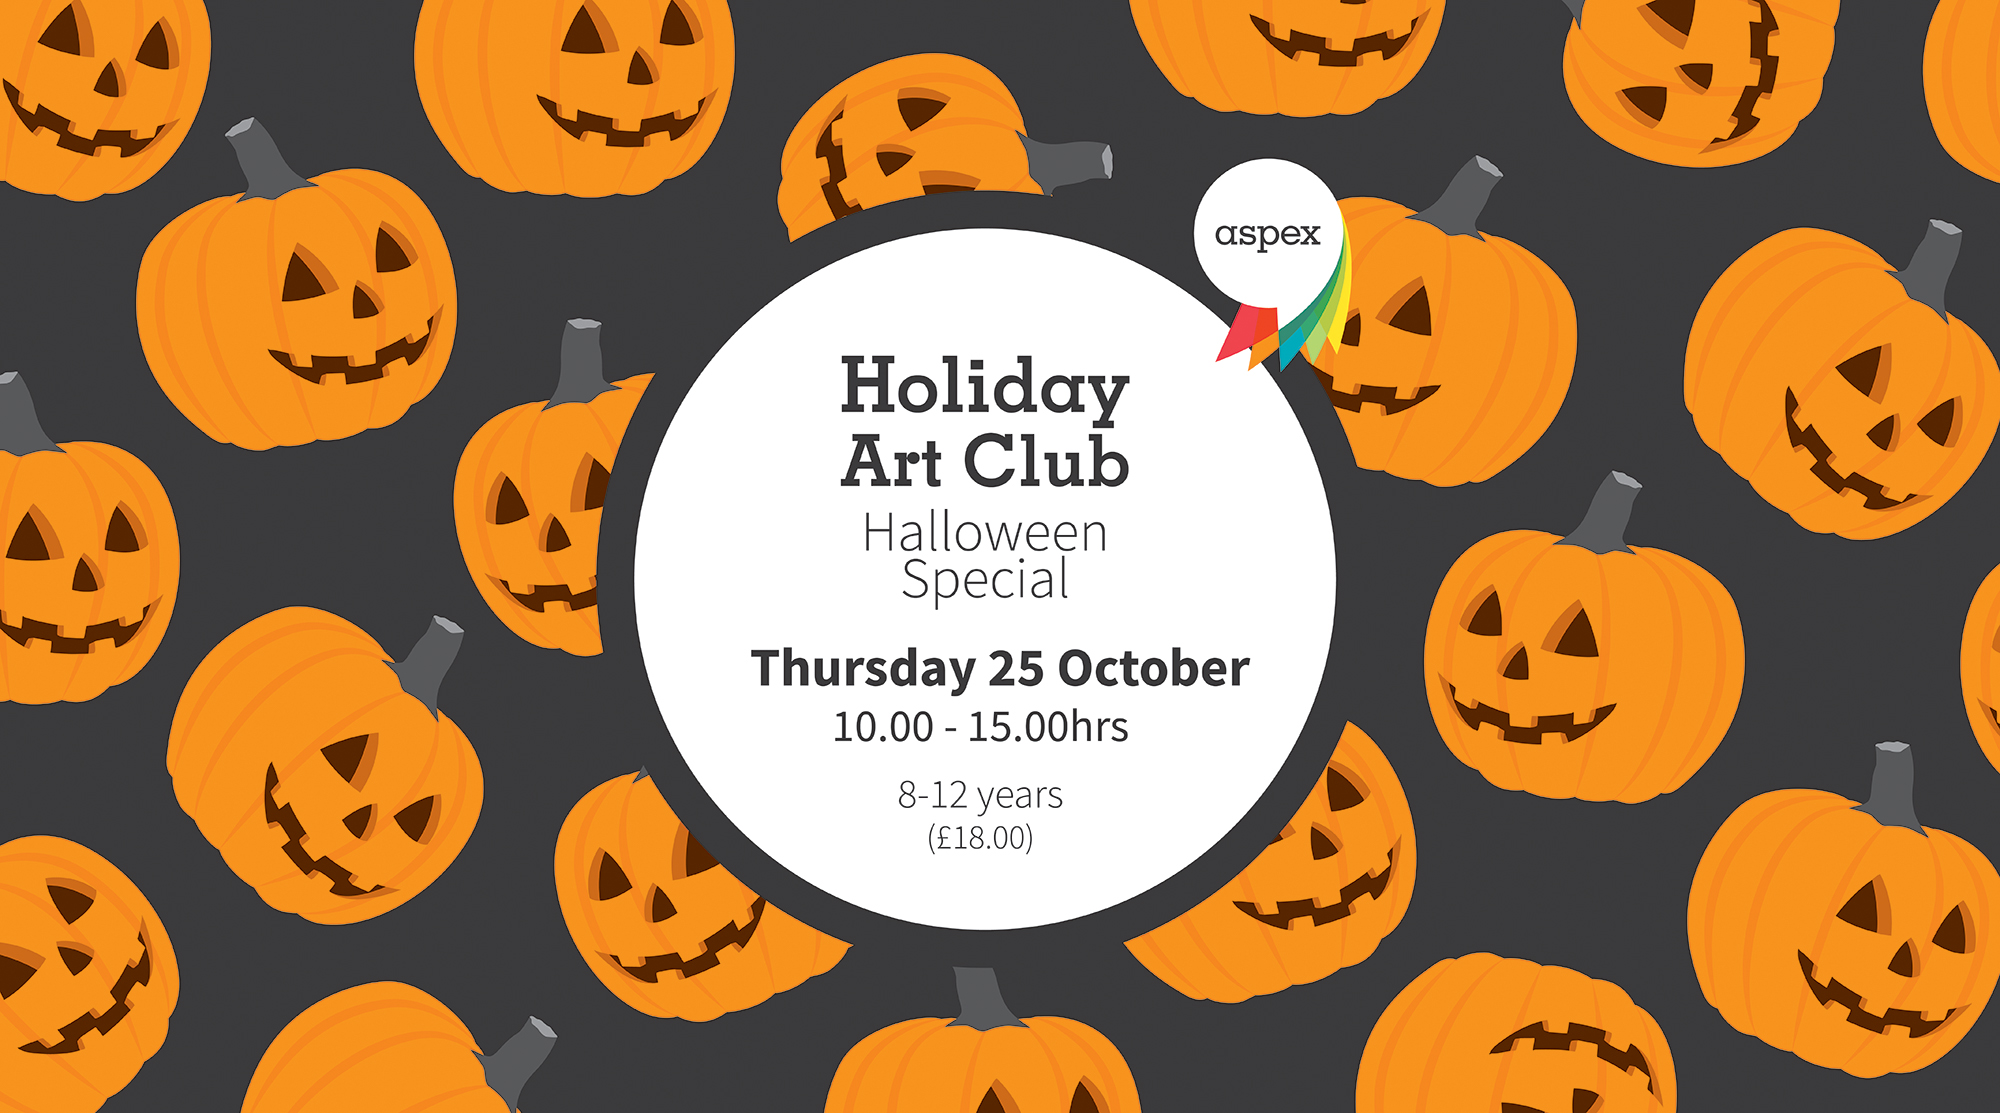 Holiday Art Club | Halloween Special